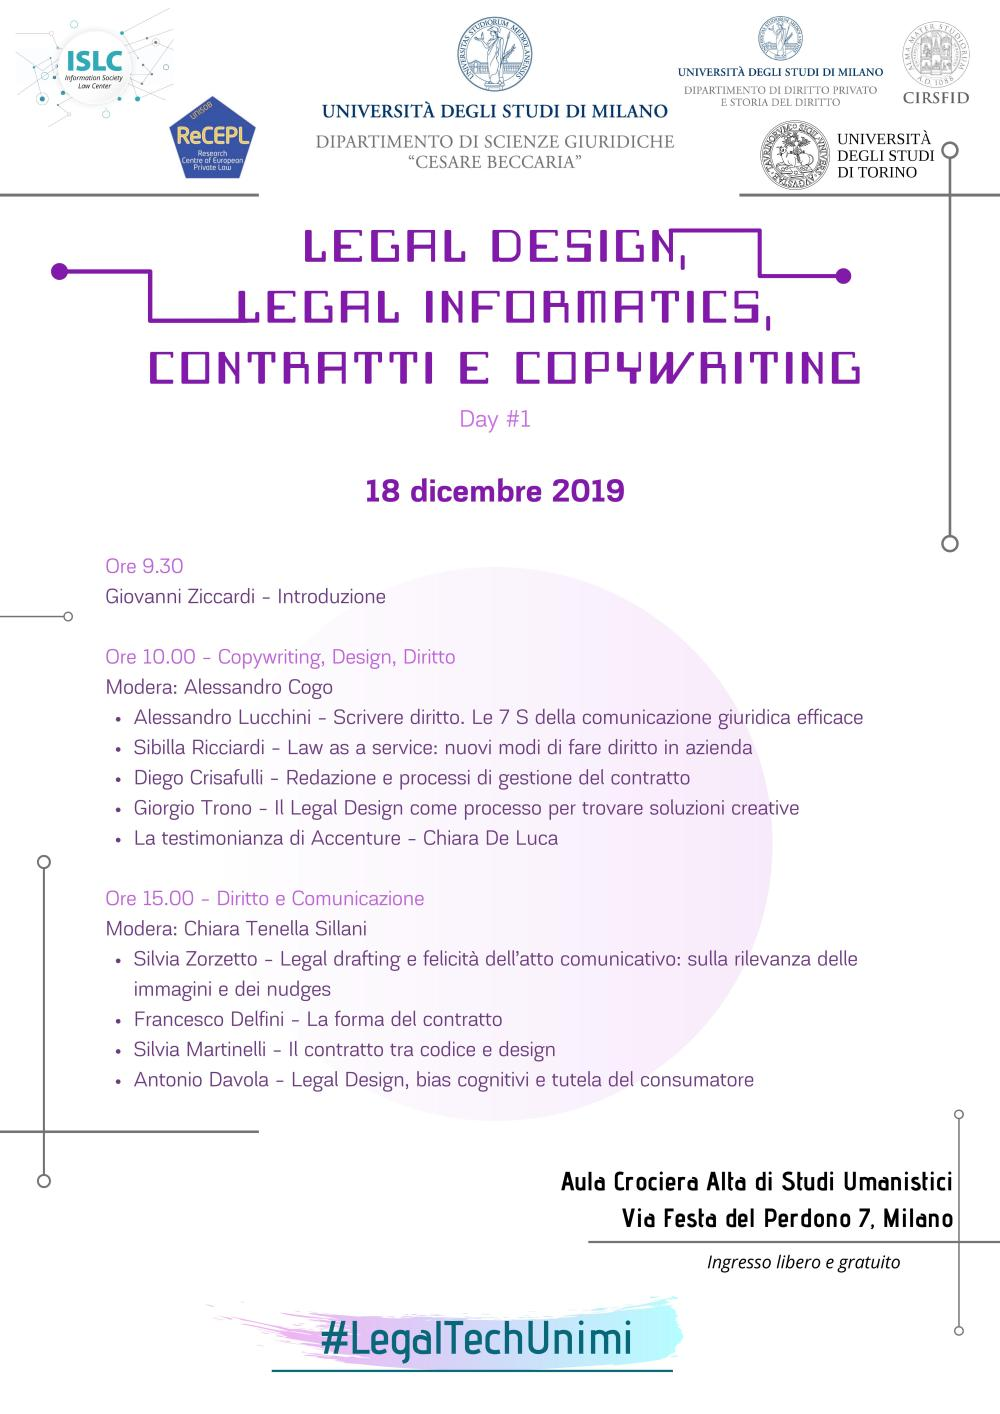 3. Legal Design, Legal Informatics Day 1